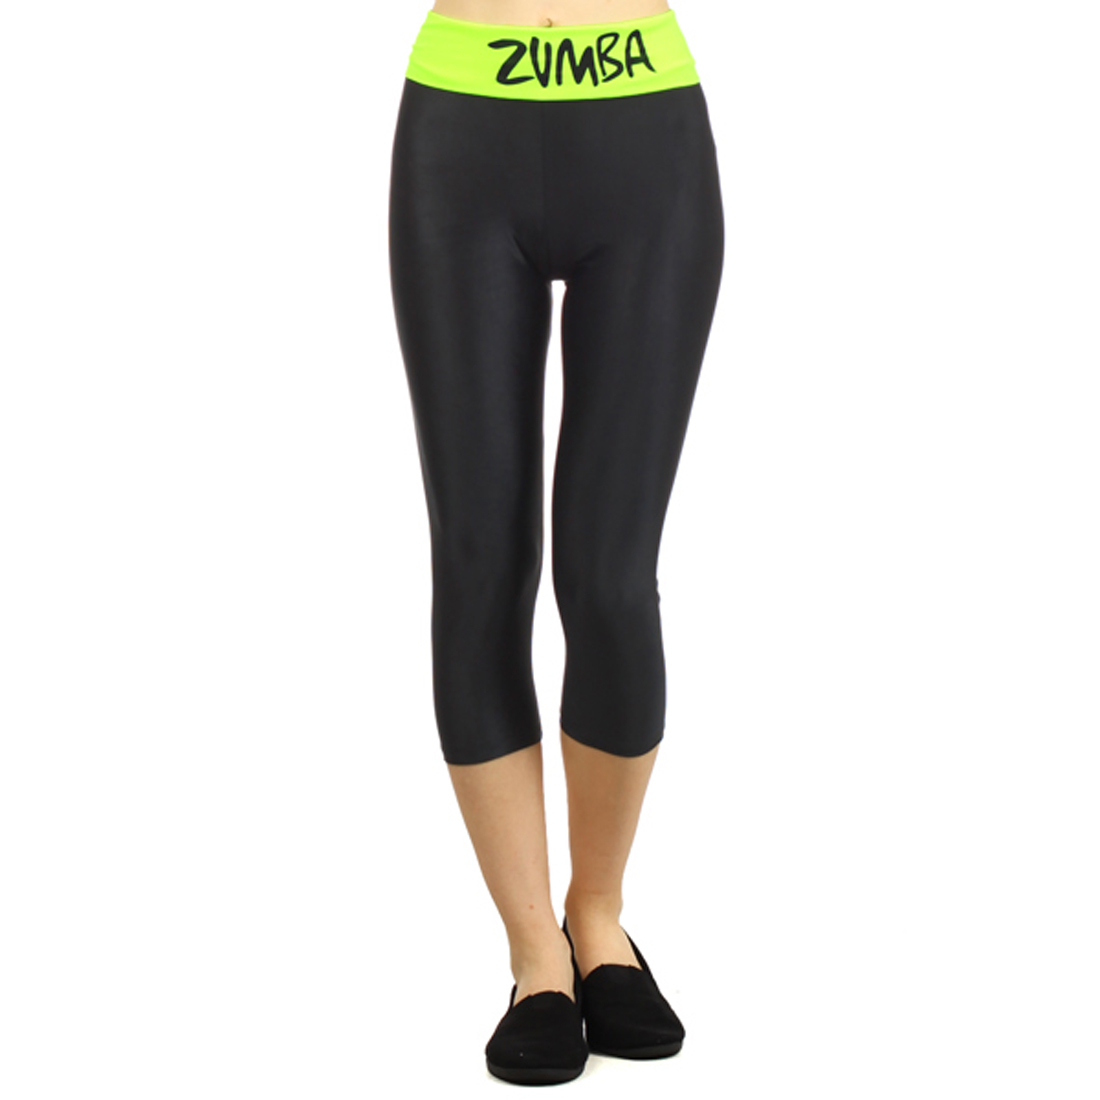 Neon Yellow and Black Zumba Dance Work Out Capri Leggings, Large by